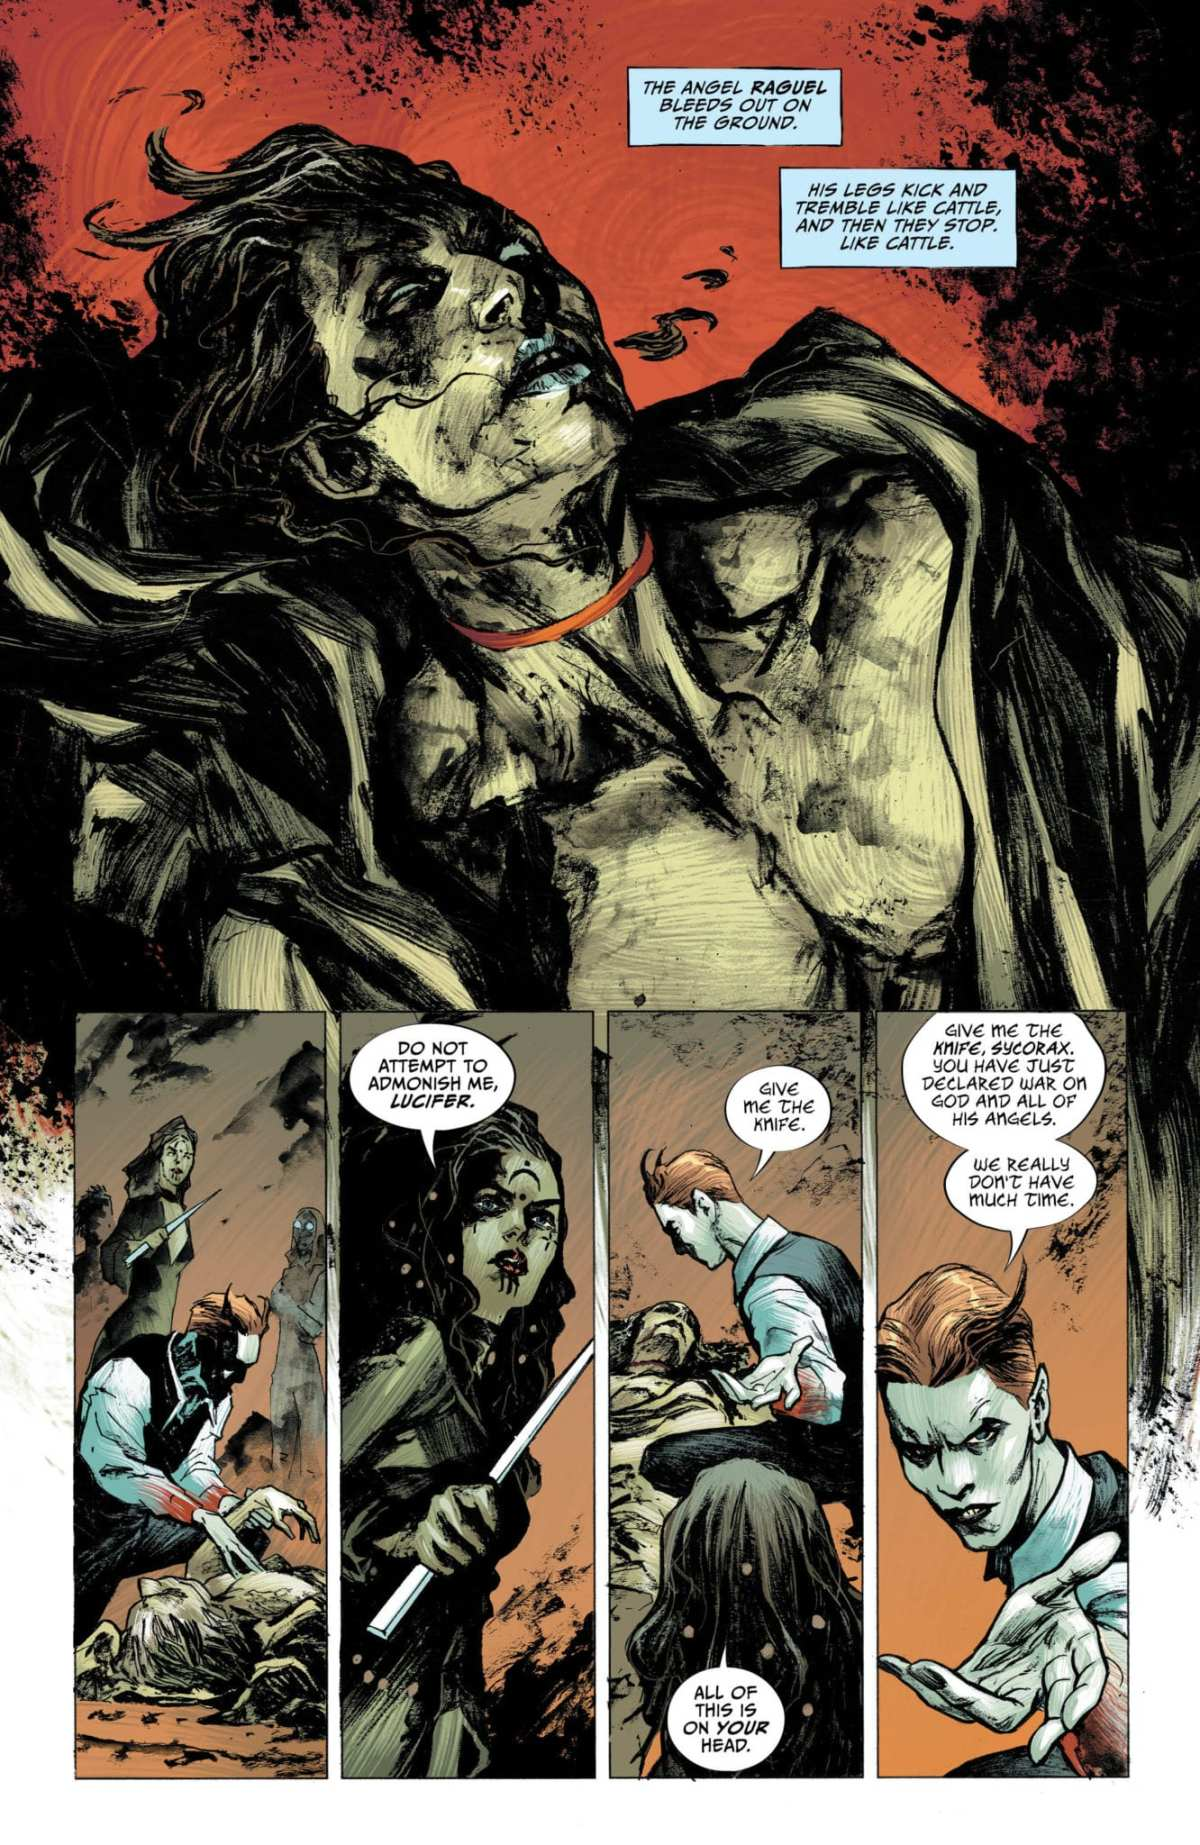 Lucifer #13, Page #1: Lucifer and Sycorax stand over the body of Raguel.